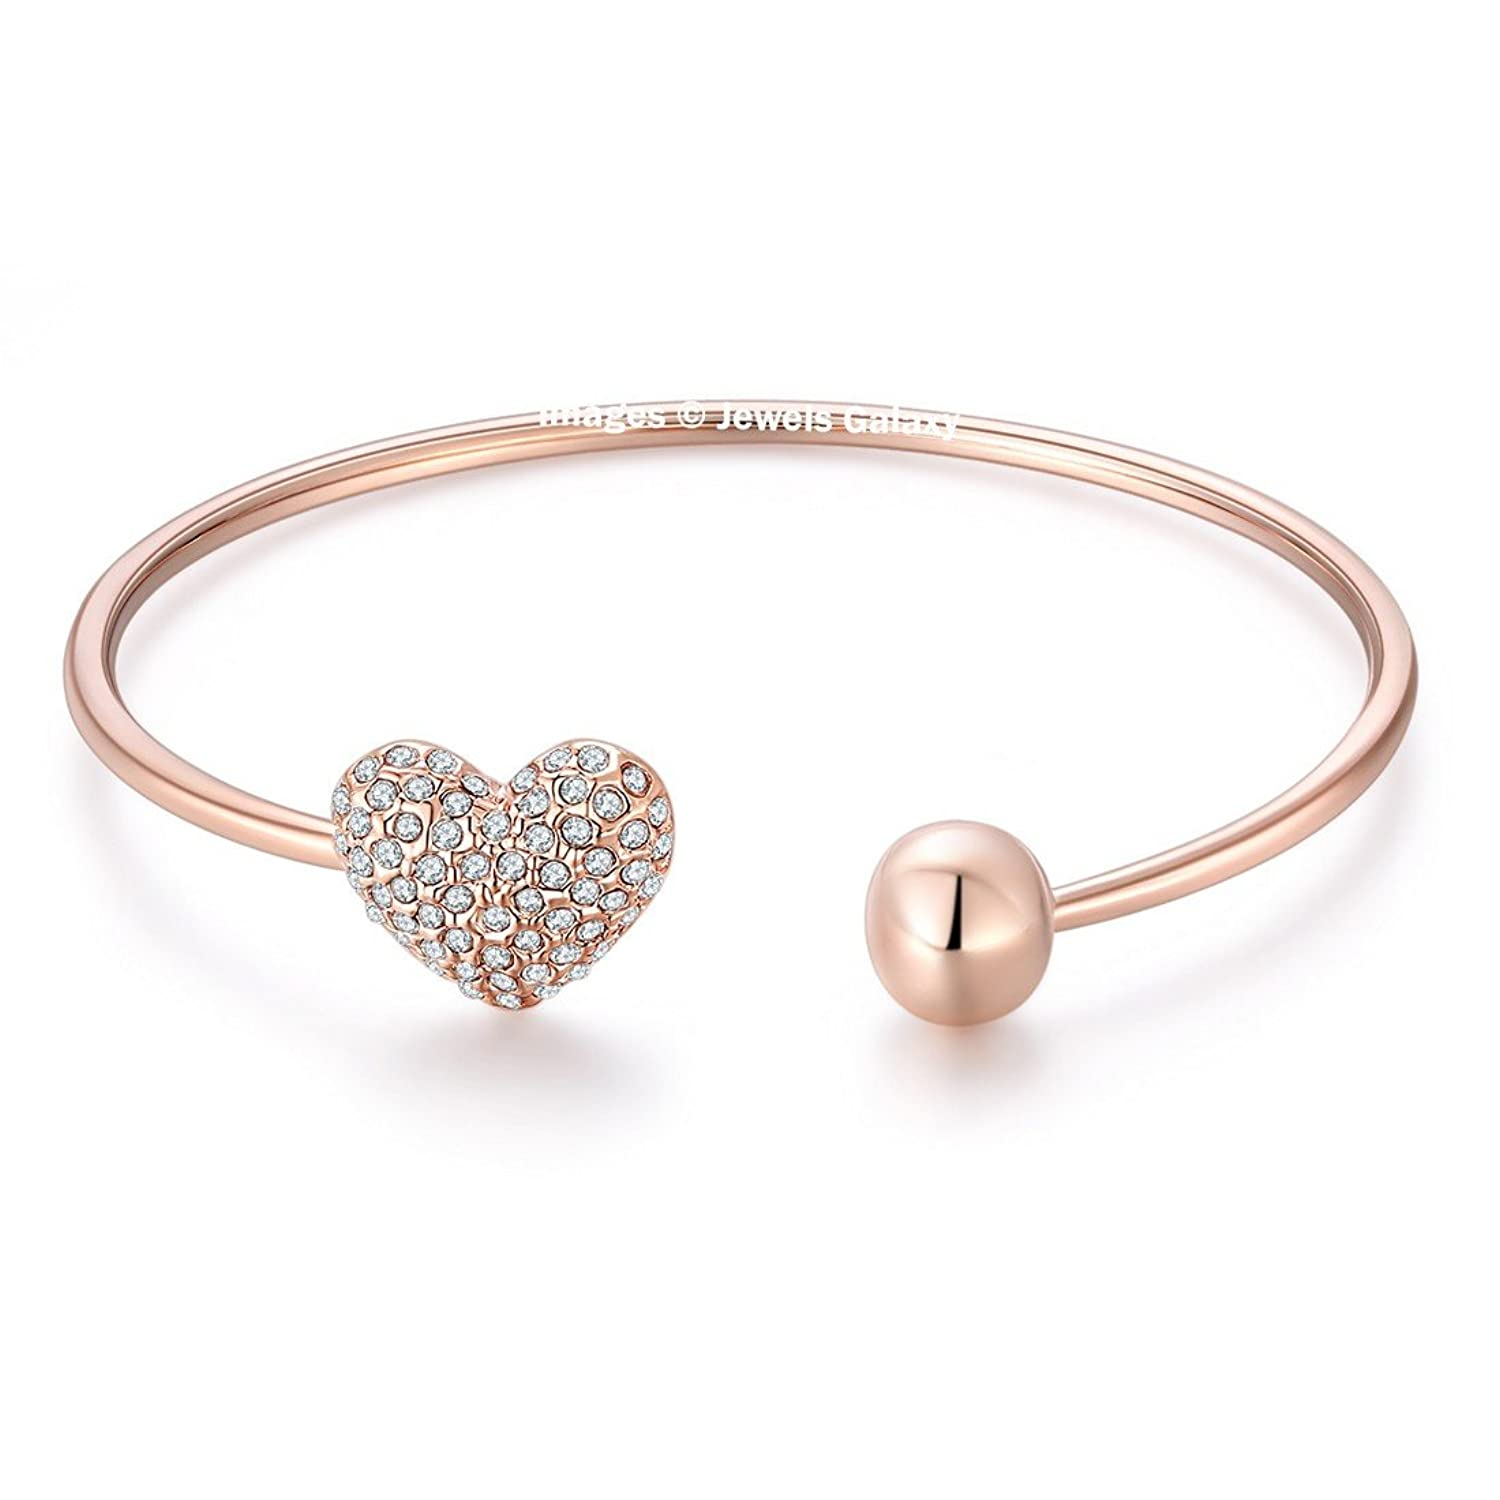 bangles small bracelet yellow rose gold silver set diameter plated fortune en amp love type bangle three cm and